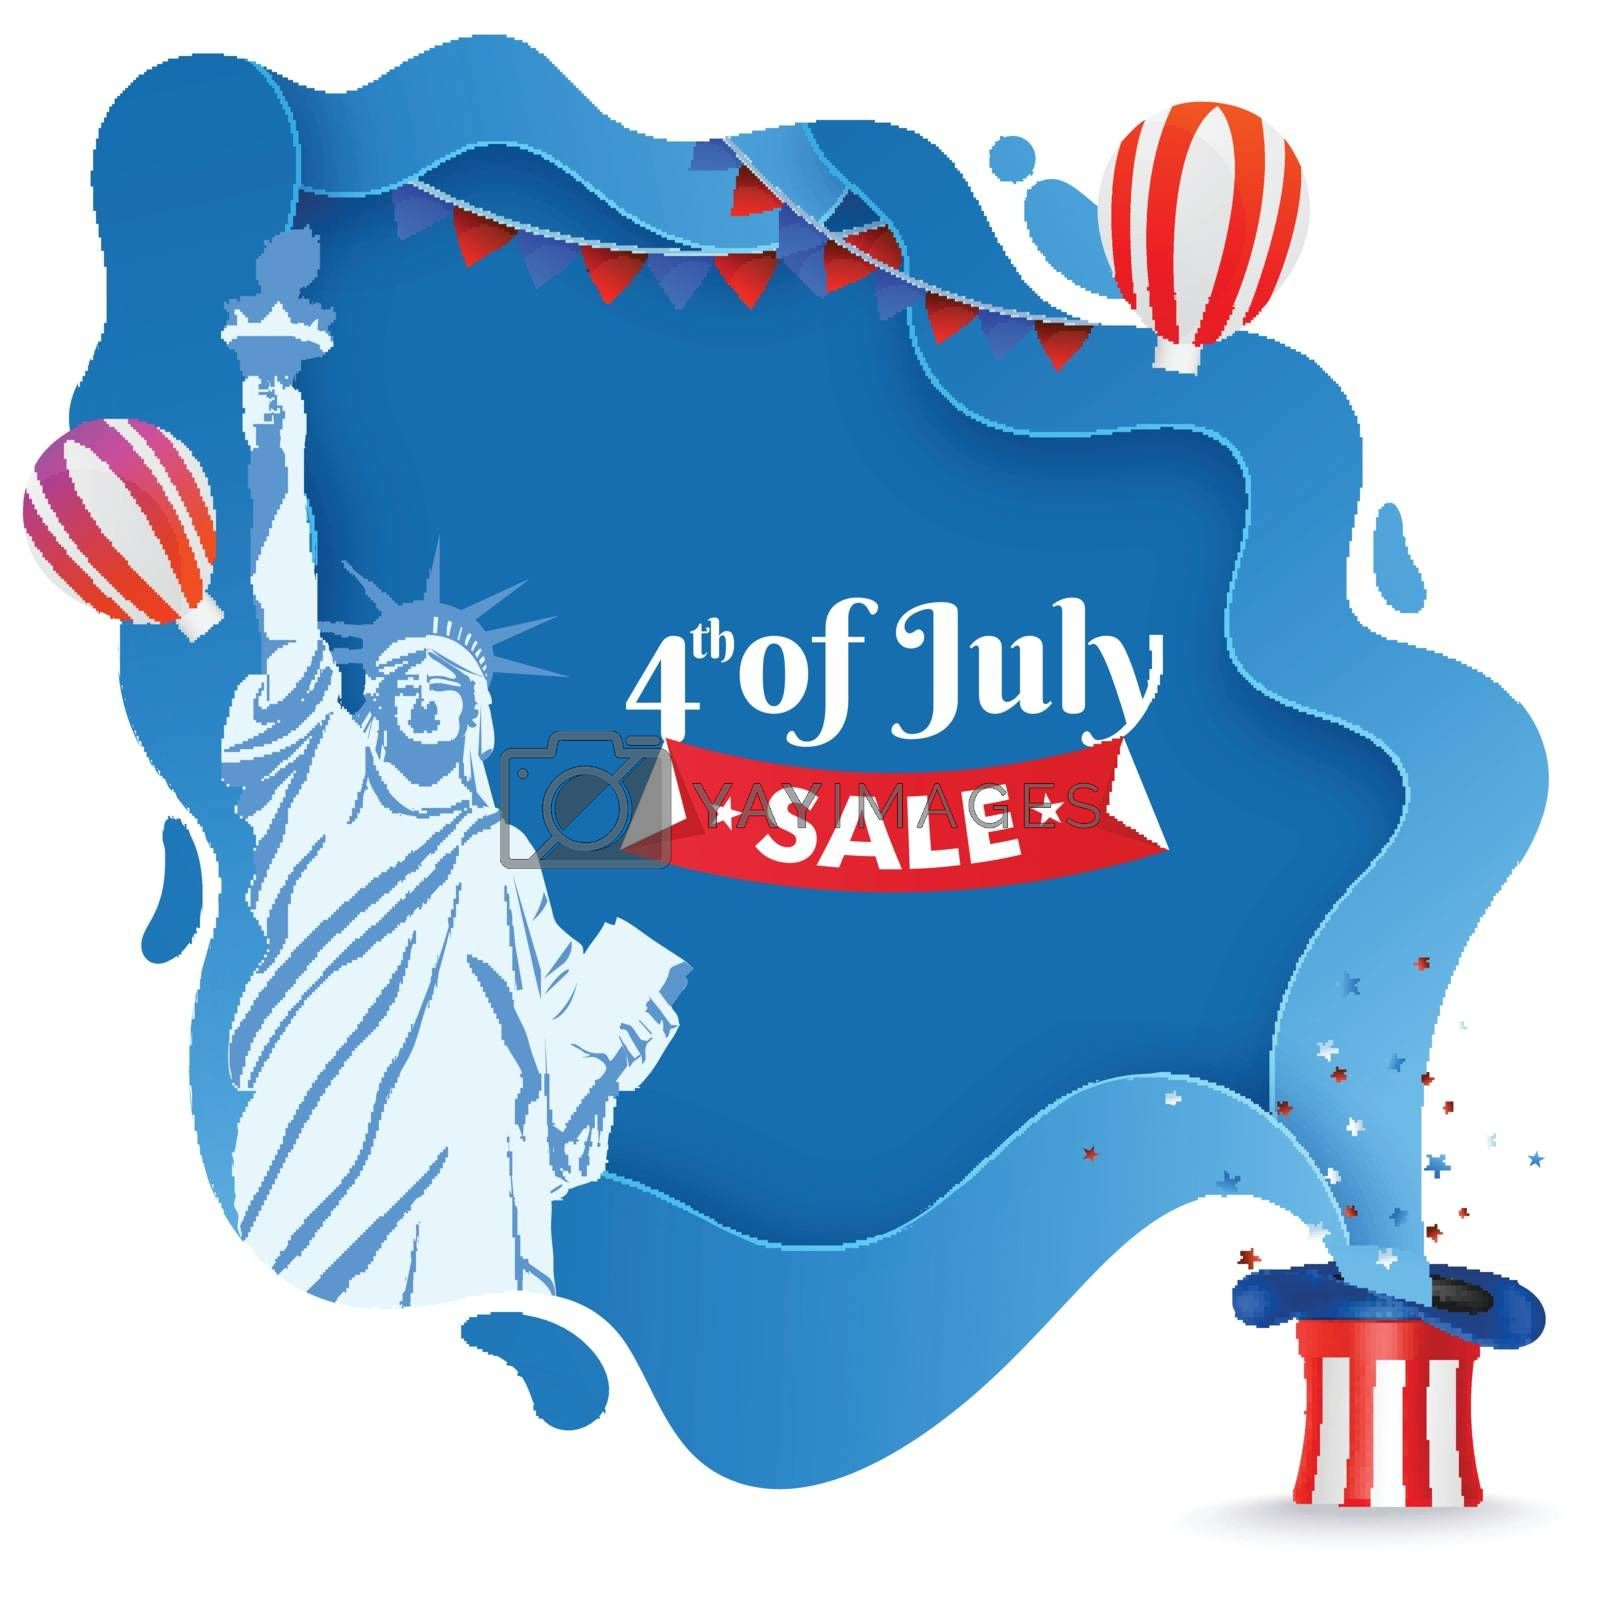 4th Of July Sale poster or template design with Statue of liberty, uncle sam hat and balloons on paper cut background.